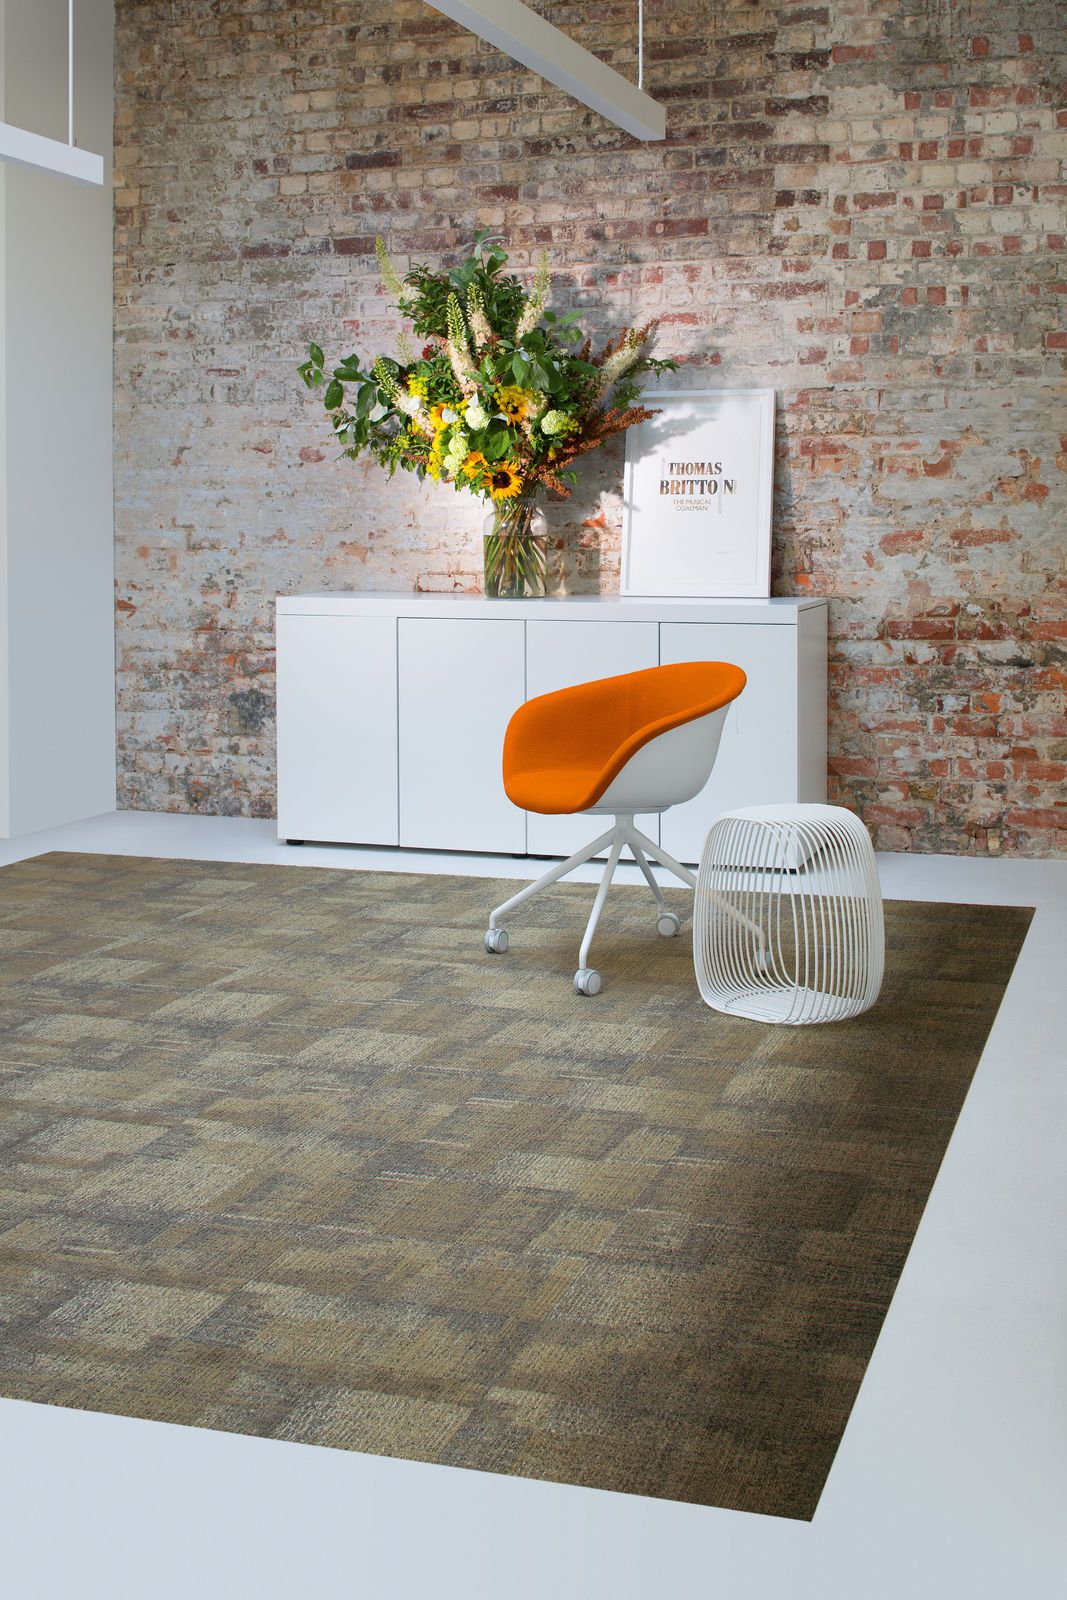 Harley color carpet tiles - Explore Interiordesign Carpets And More